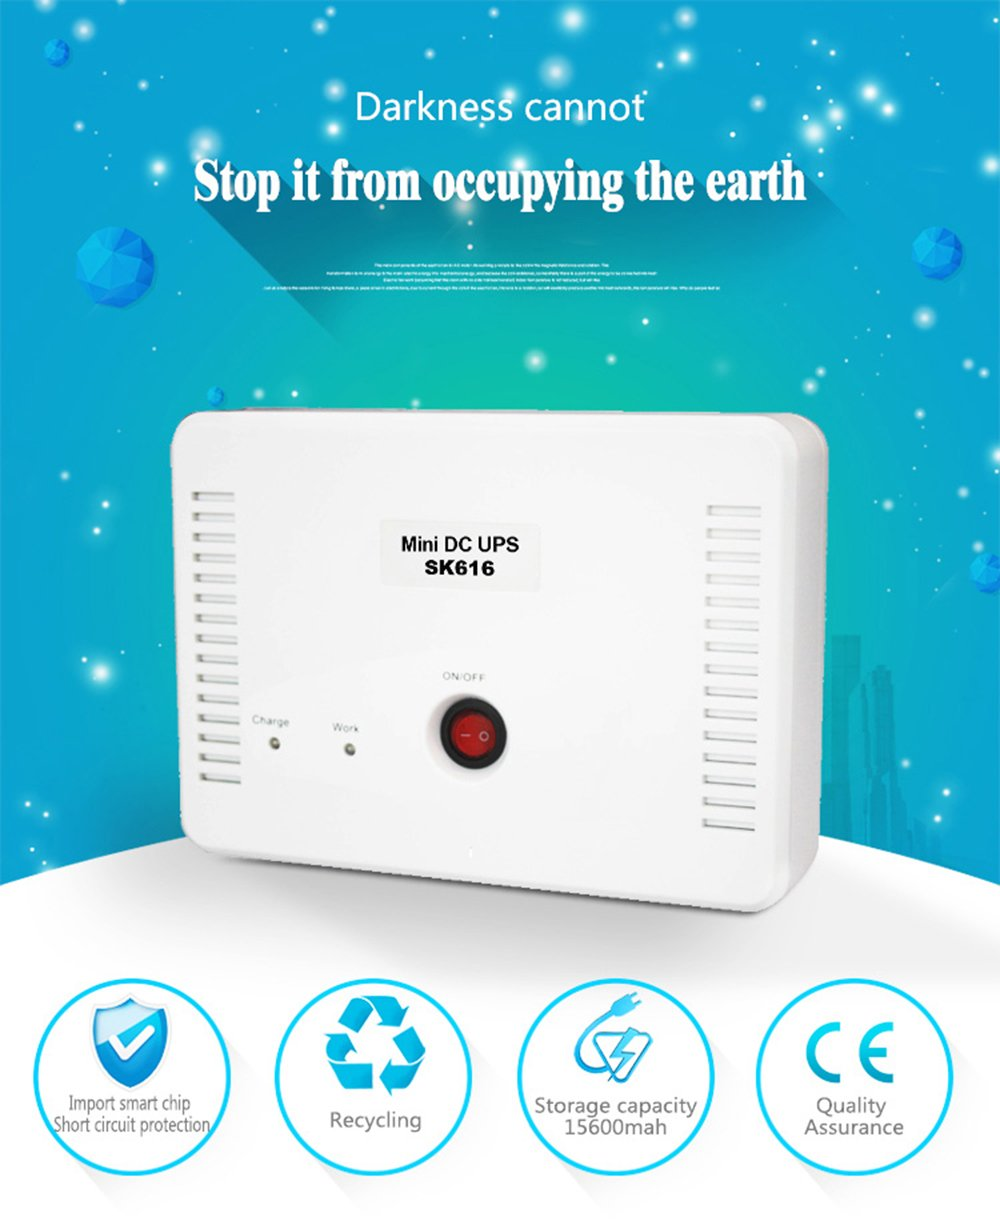 Mini DC UPS Application, Power Bank for Home Office, Multi Input ...